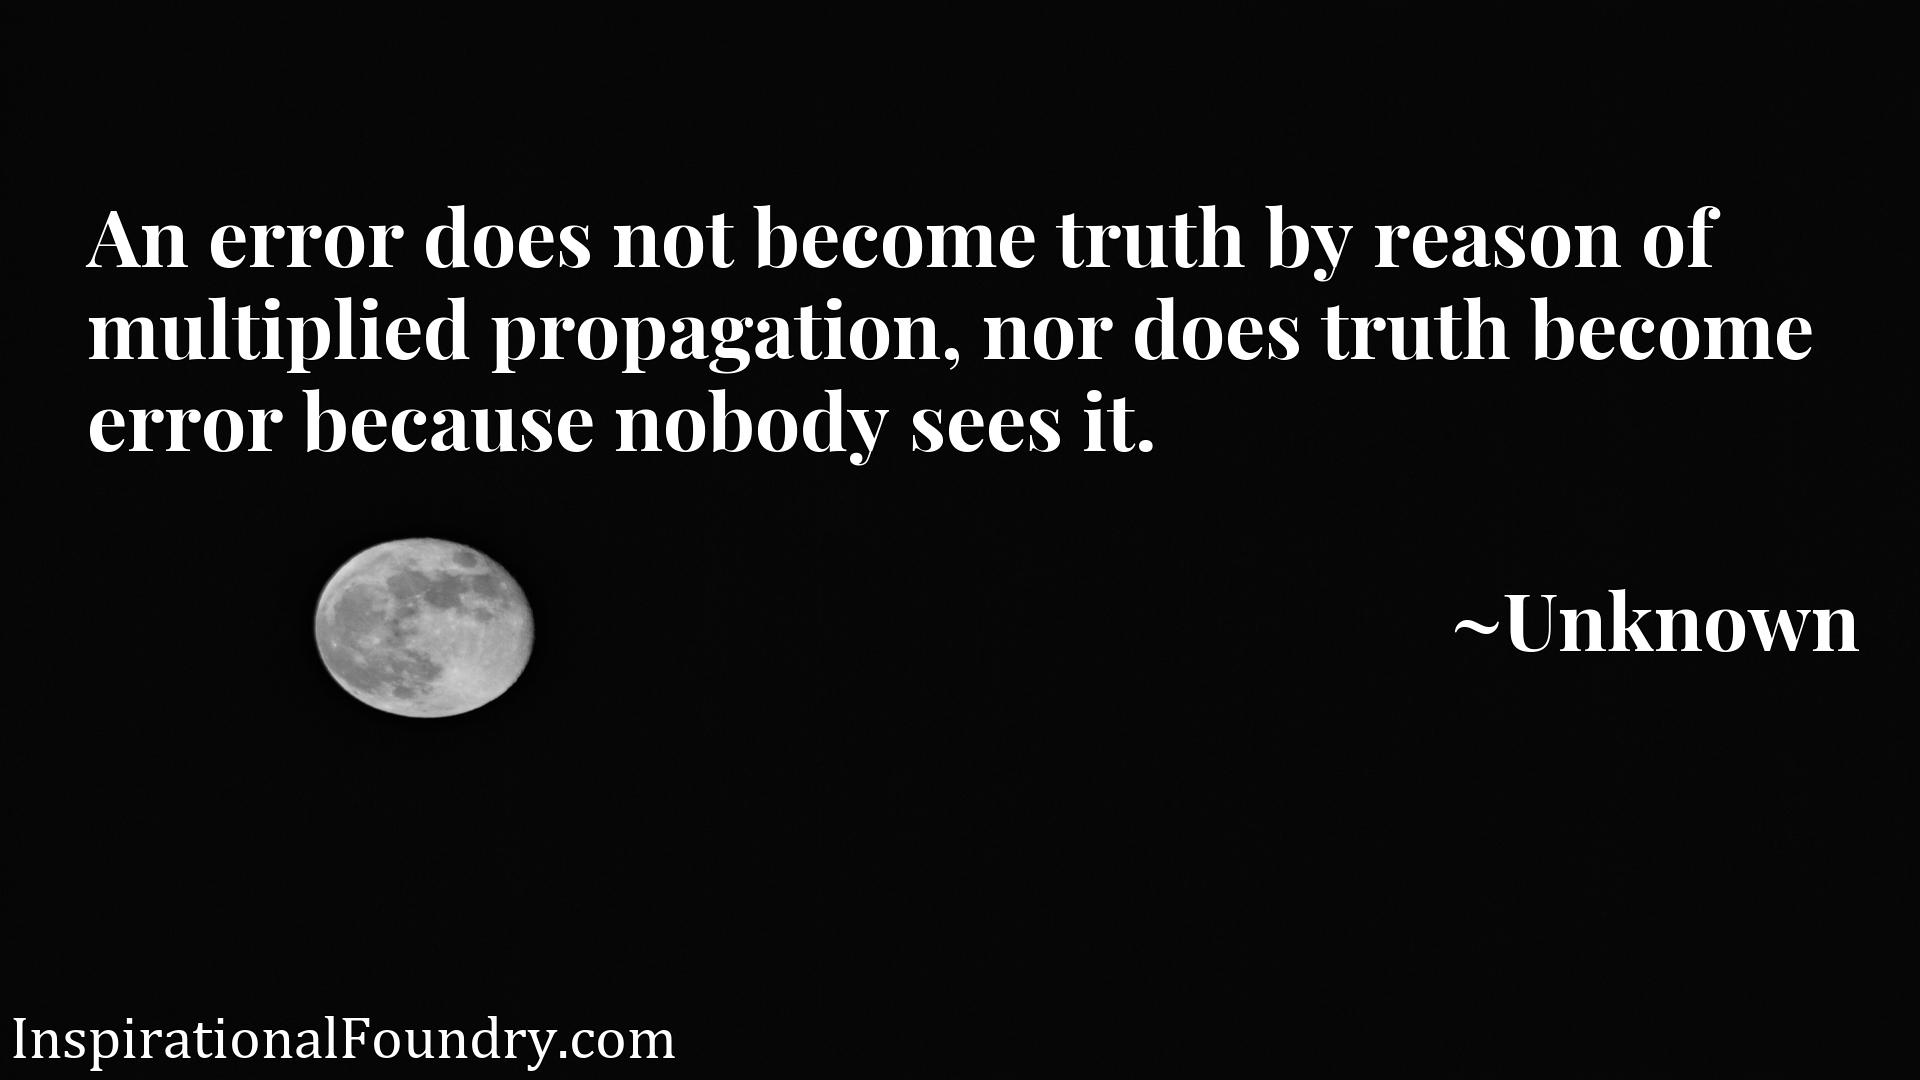 Quote Picture :An error does not become truth by reason of multiplied propagation, nor does truth become error because nobody sees it.